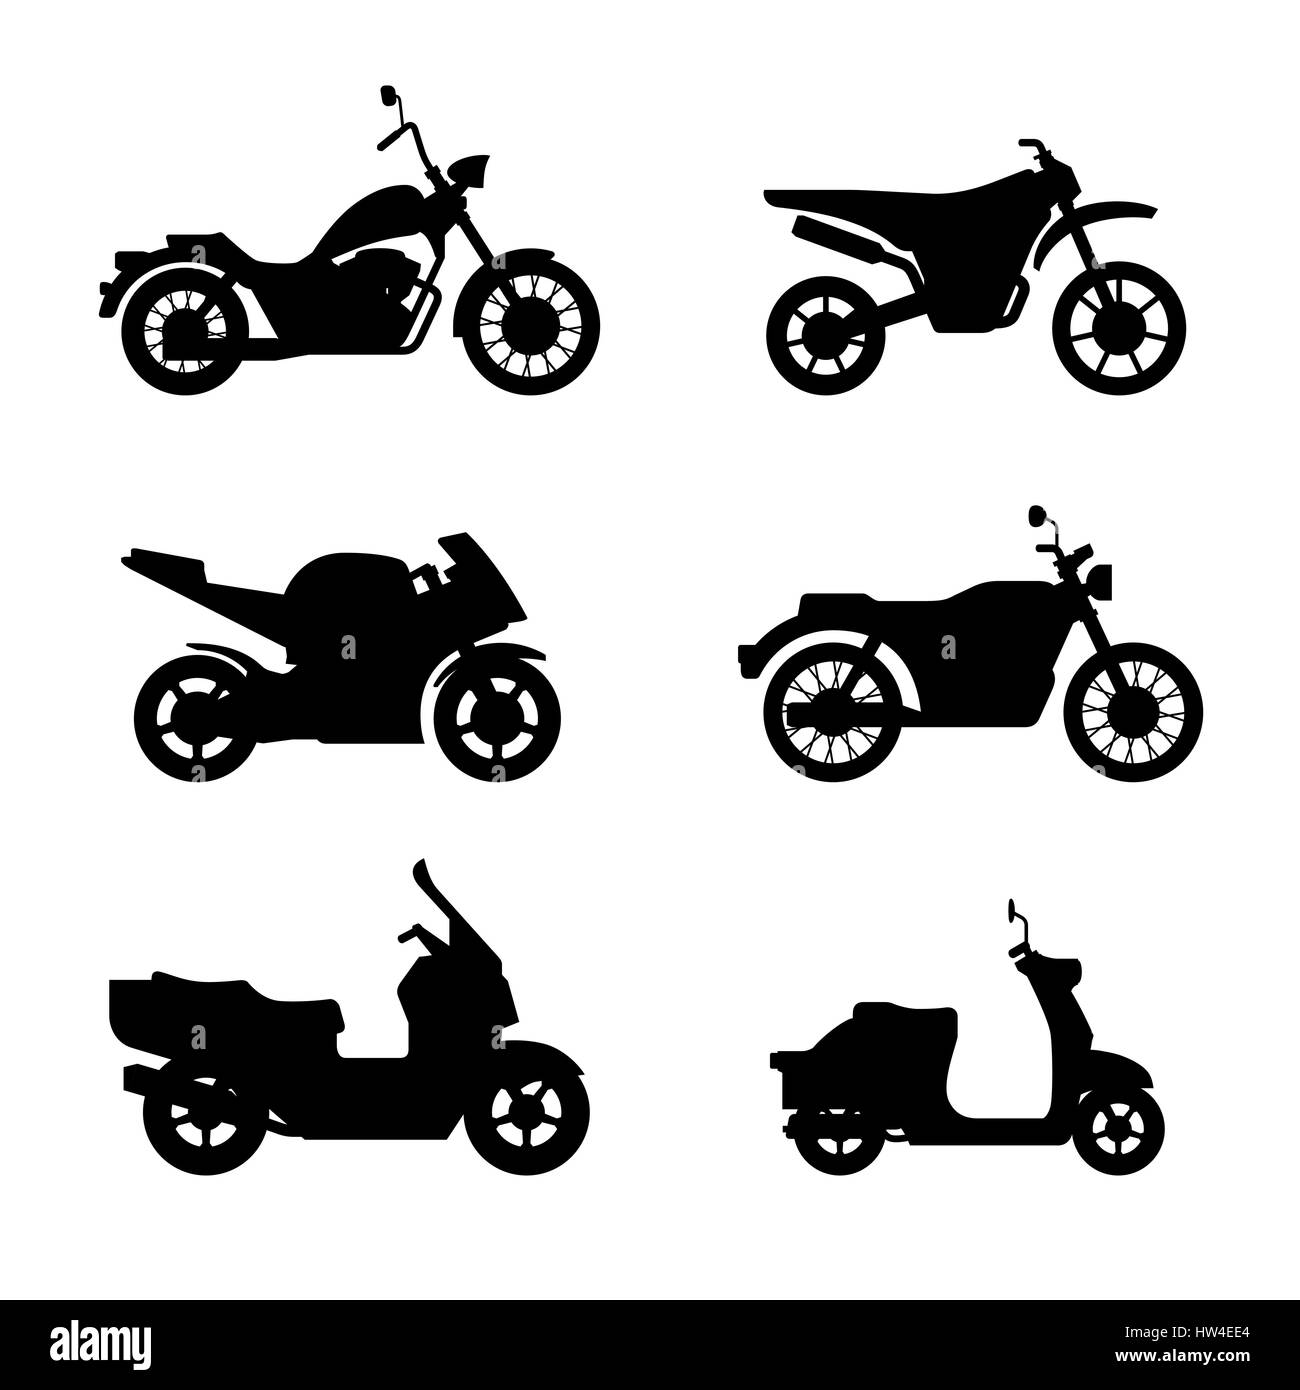 Motorcycles and scooters black silhouettes - Stock Image